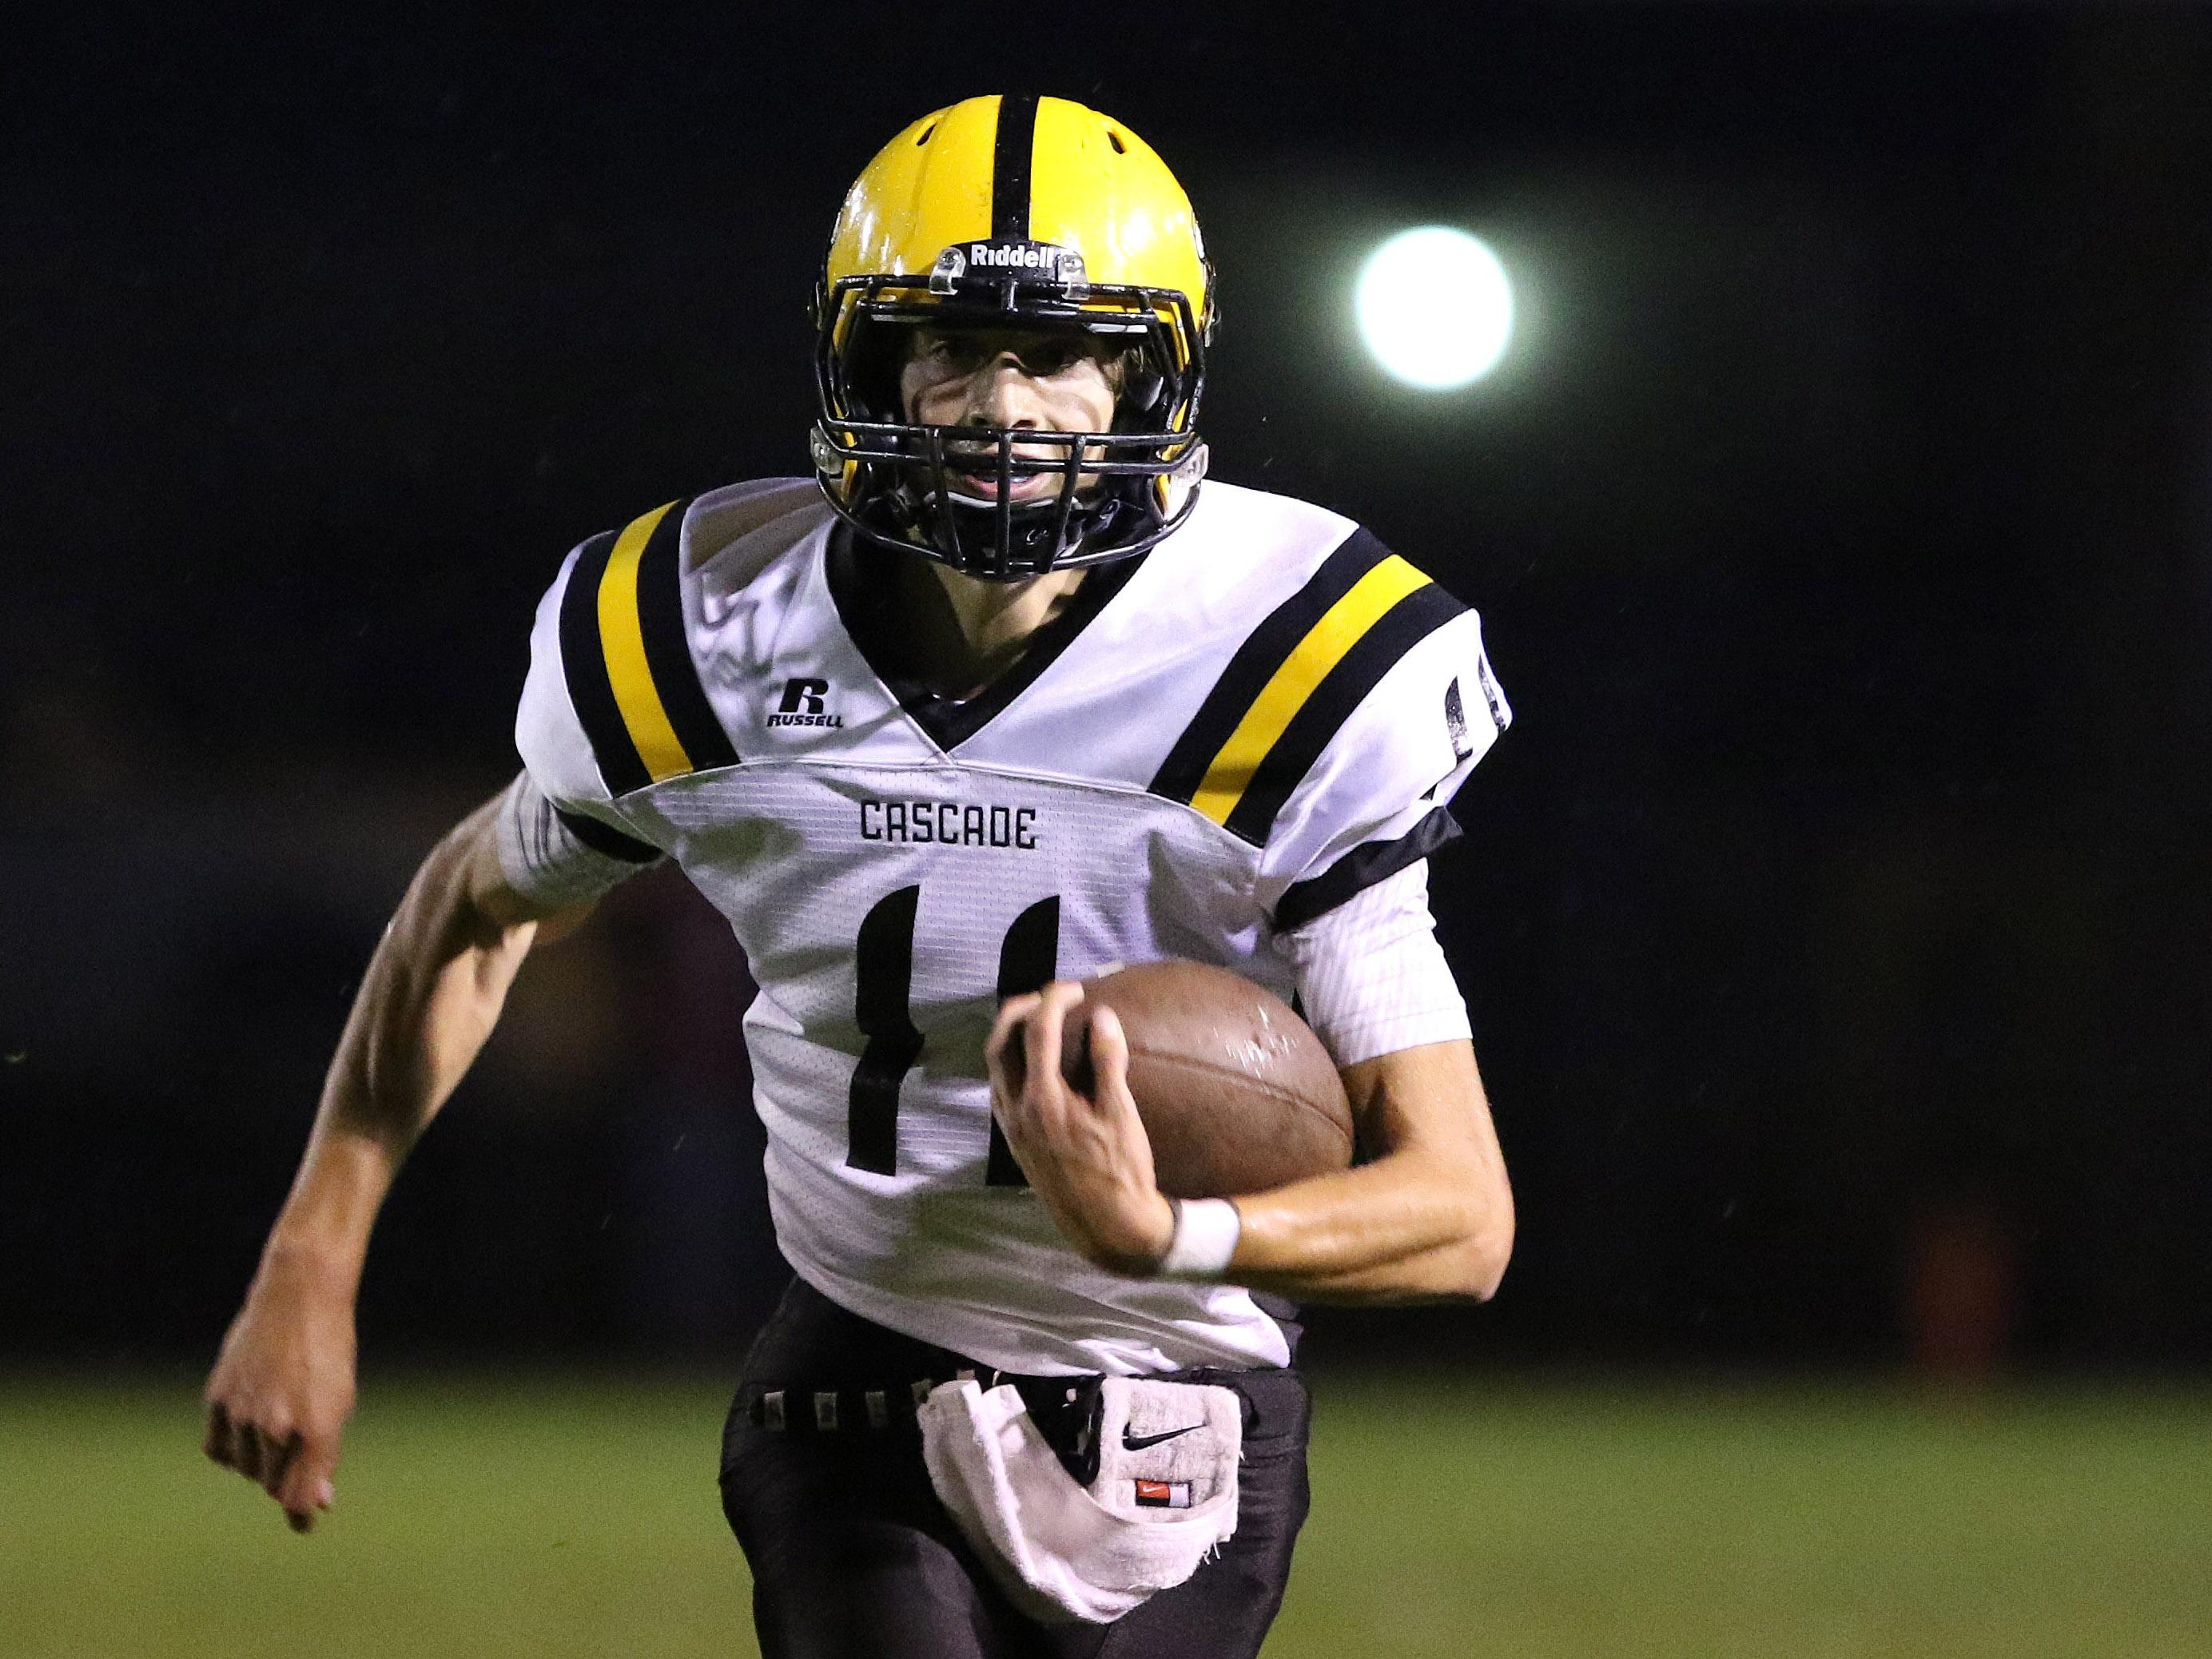 Cascade quarterback John Schirmer rushed for 31 yards and a touchdown against Stayton.